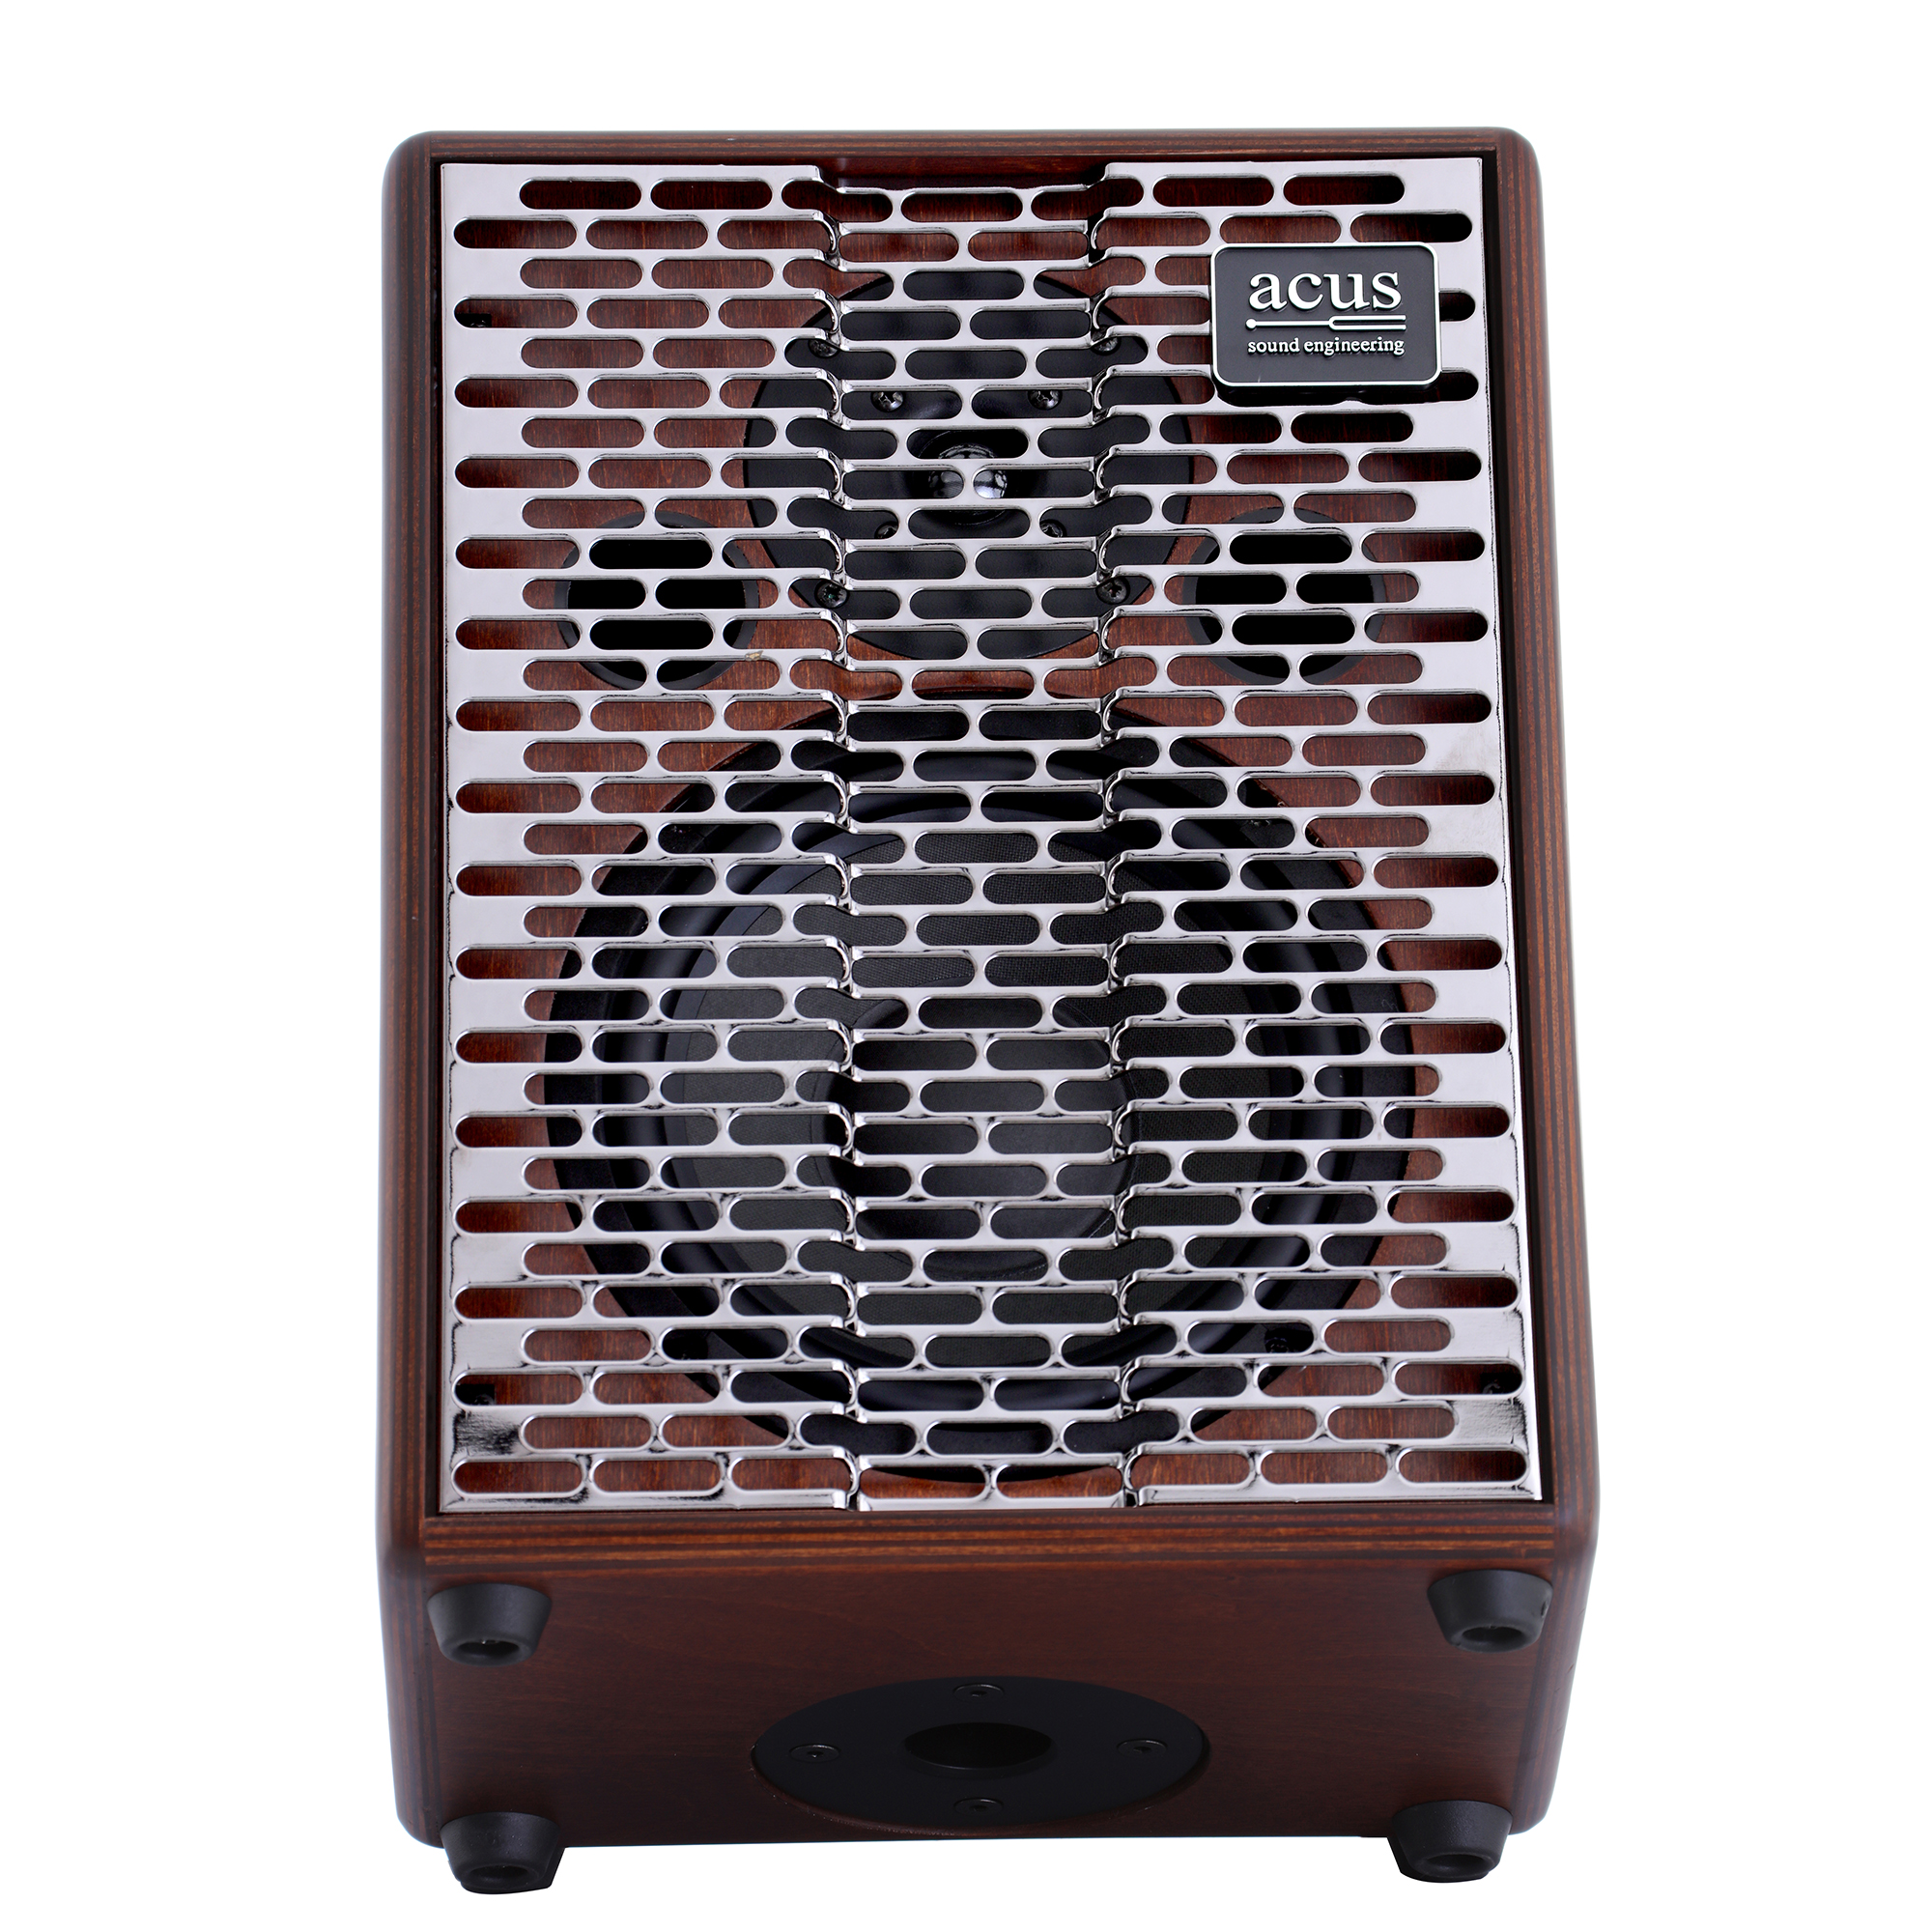 Acus One for Strings 8 Simon Acoustic Guitar Amplifier (wood)